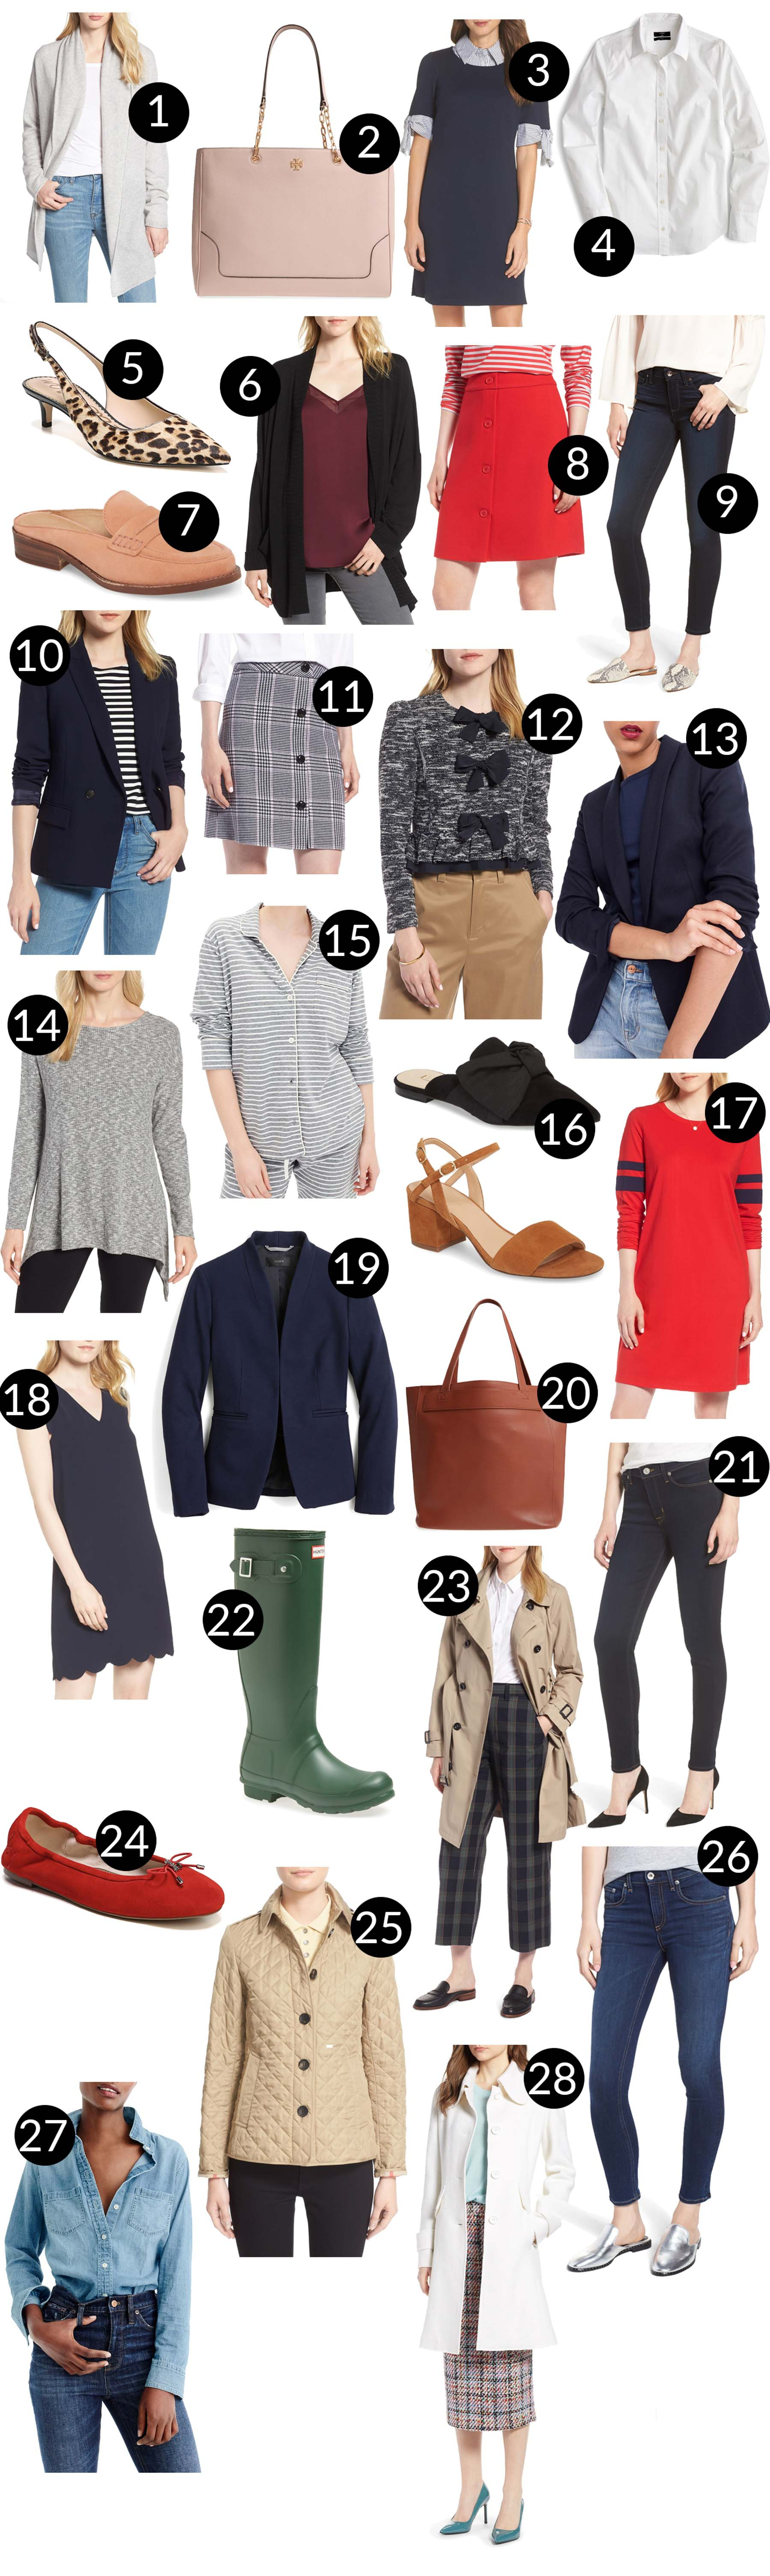 Nordstrom Labor Day Weekend Sales - Kelly in the City